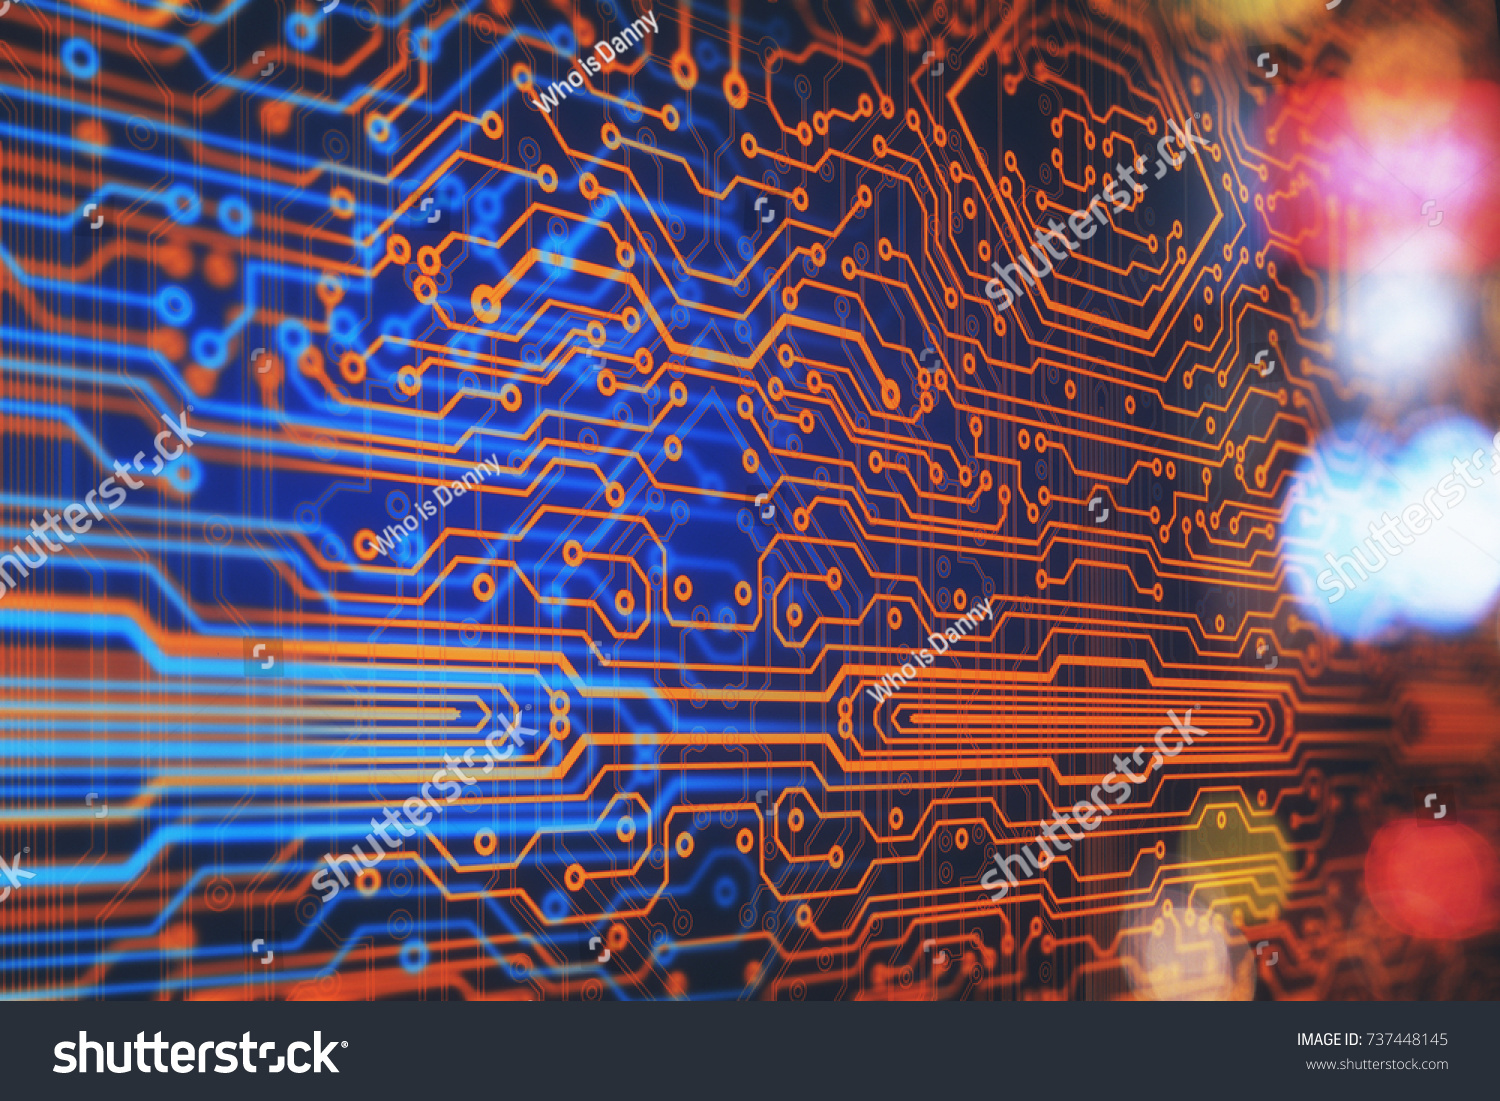 Abstract Circuit Board Background Processor Concept Stock Electric Tshirts 3d Rendering